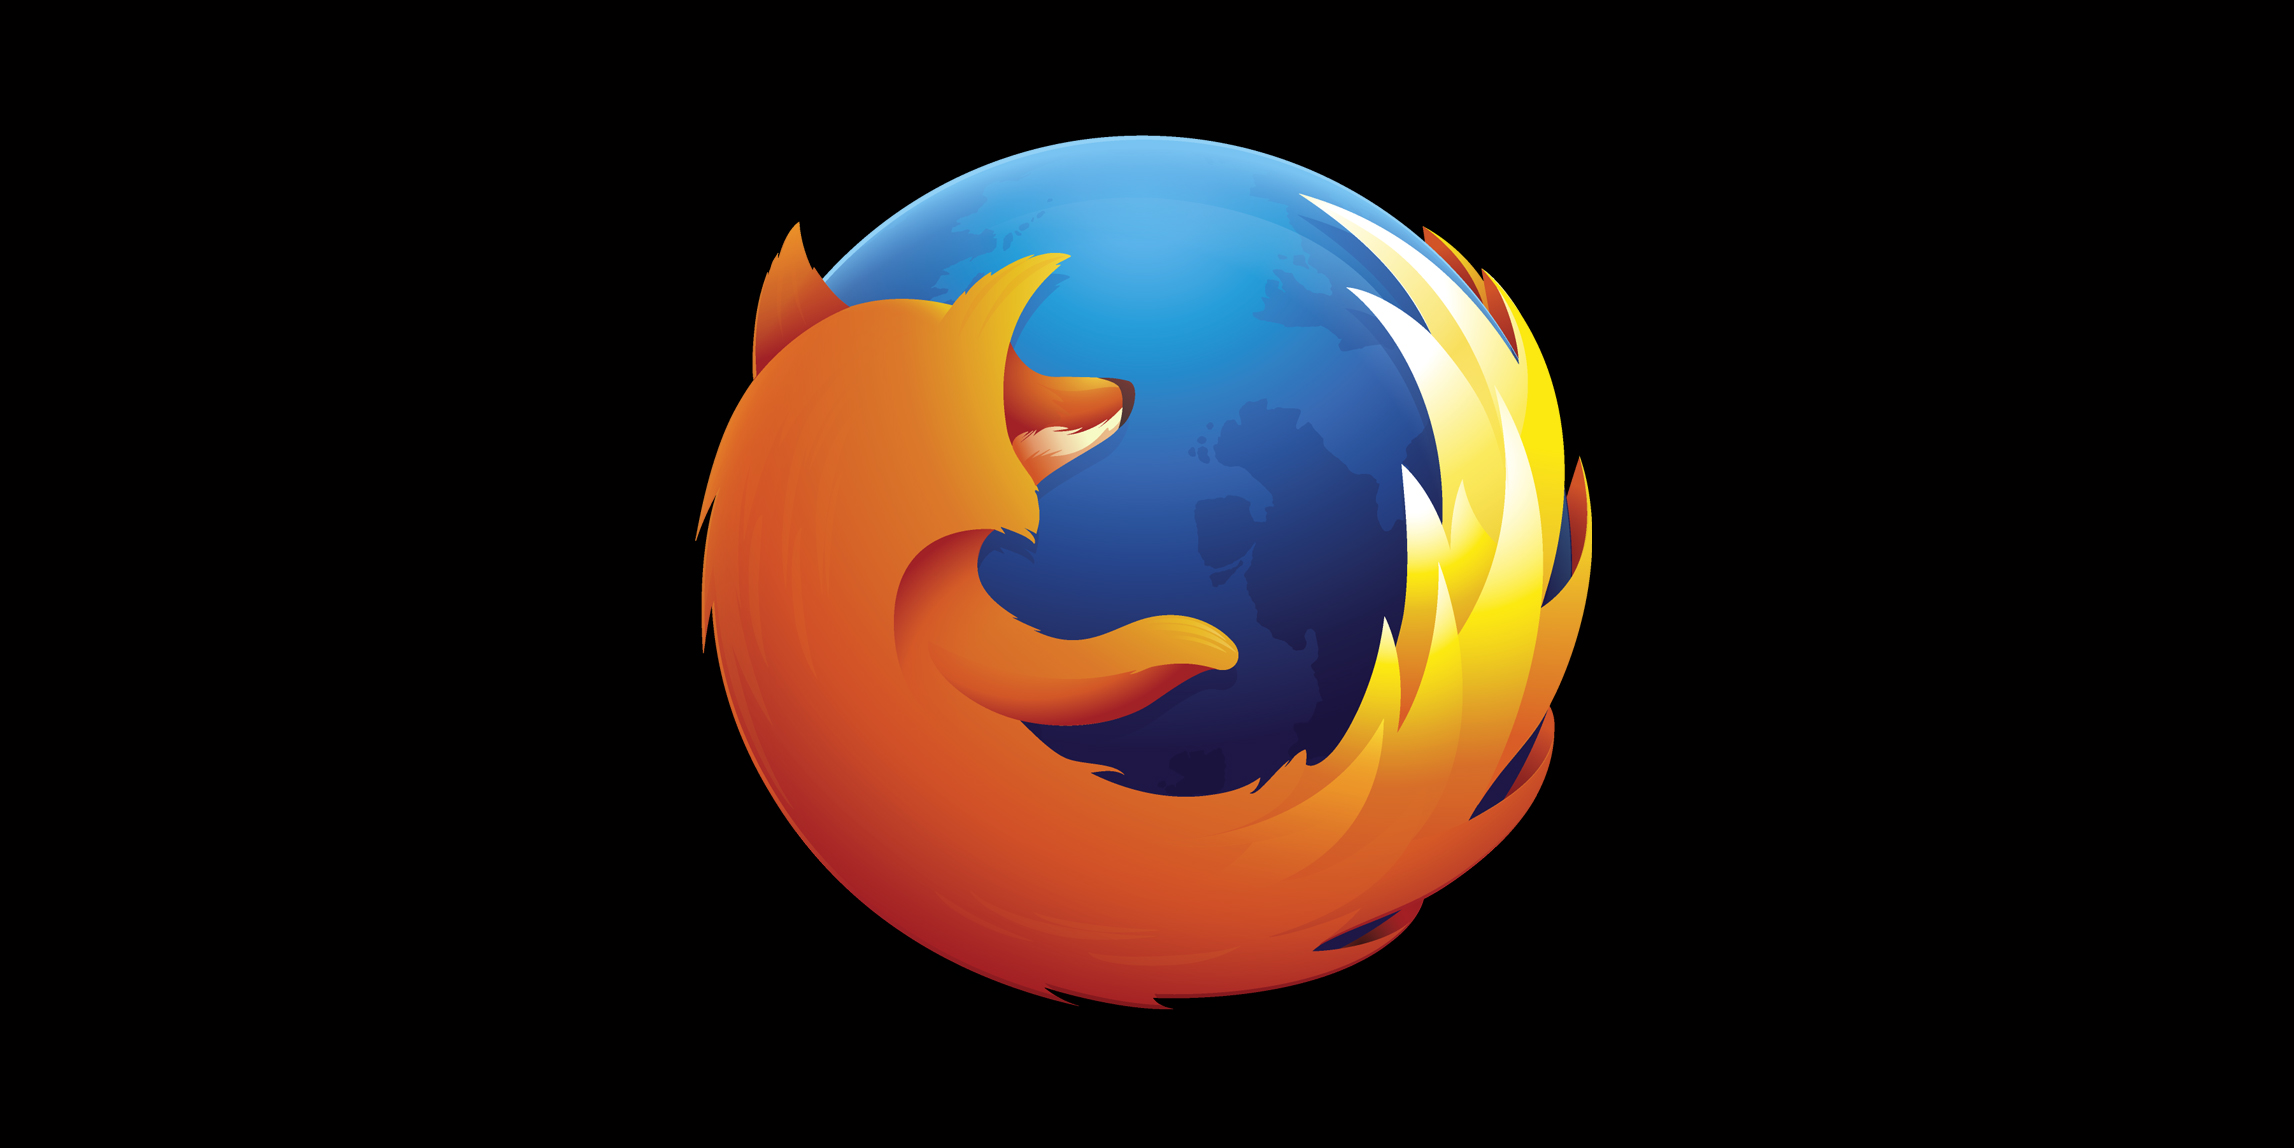 HQ Firefox Wallpapers | File 295.1Kb